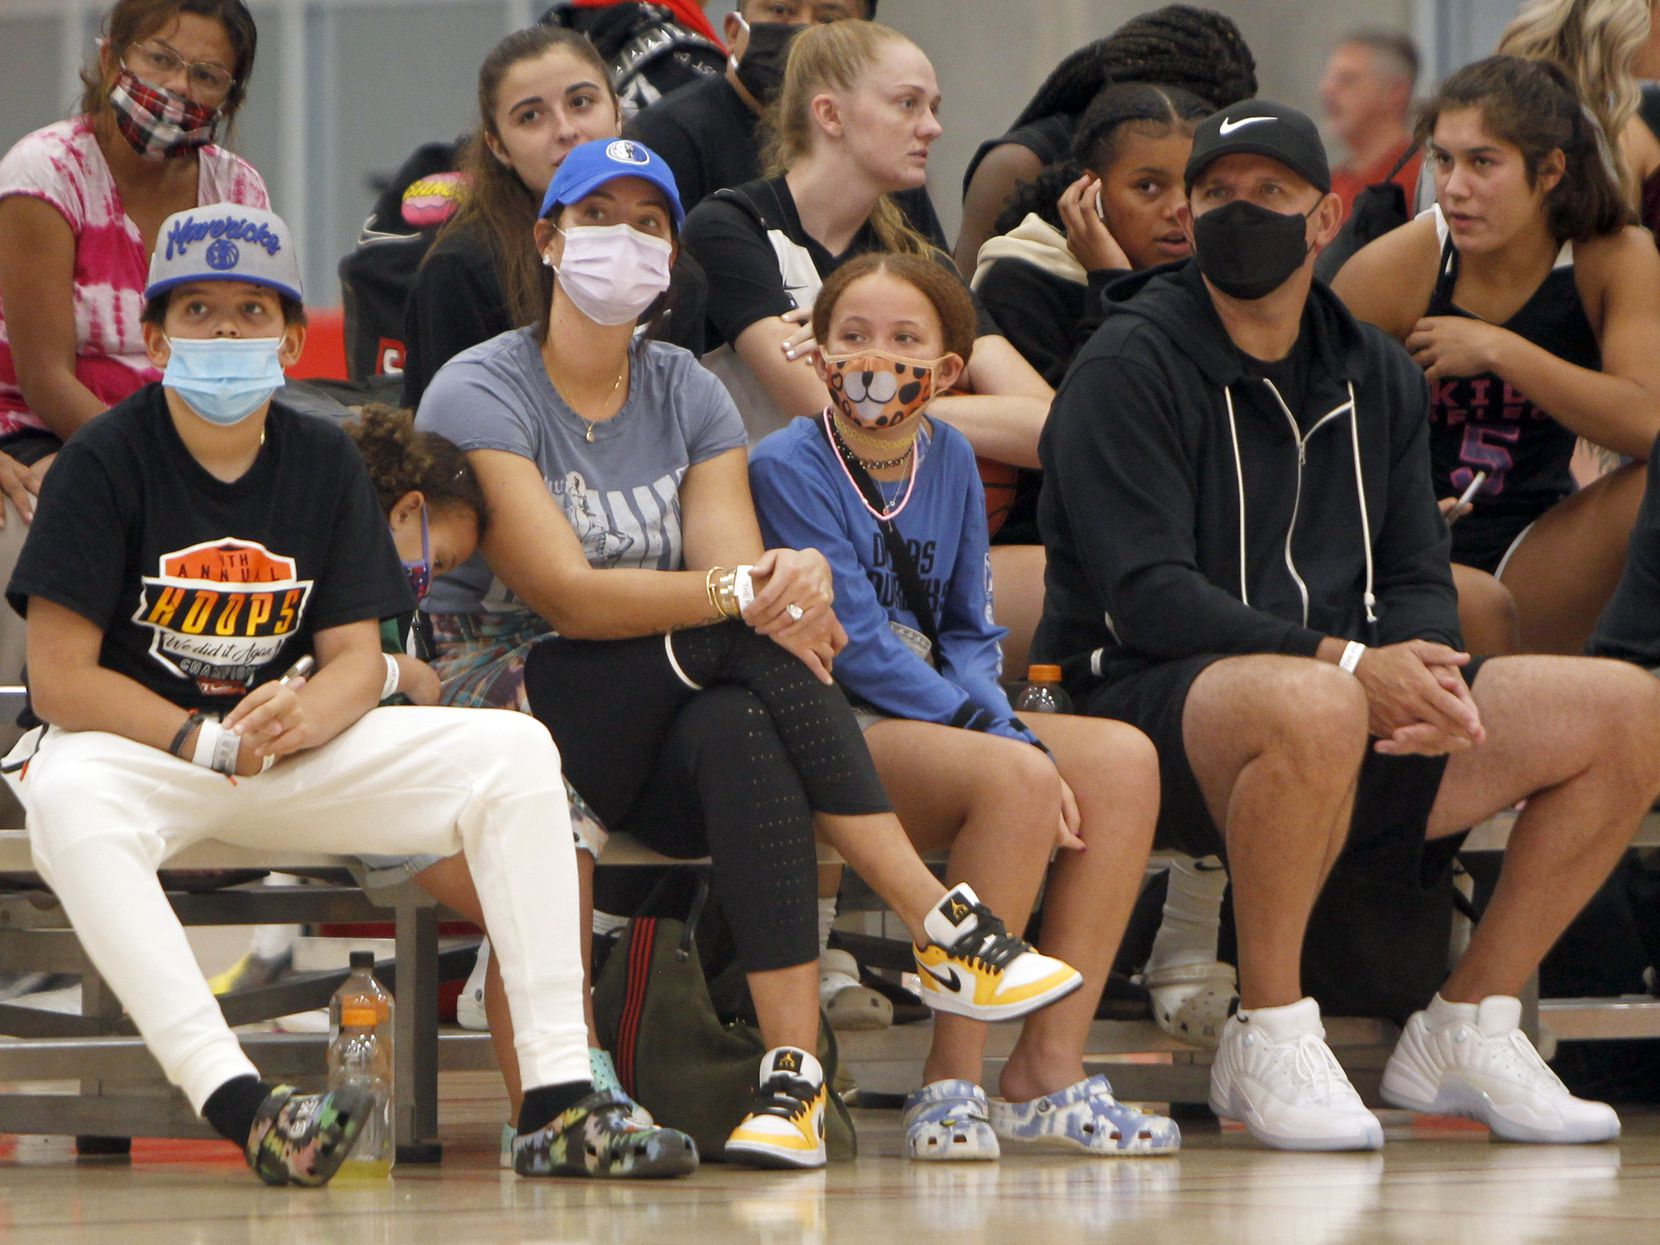 Dallas Mavericks head coach Jason Kidd, right,  watches alongside his family in attendance for a girls basketball game featuring Kidd Select, a team he sponsors. Family members from left are, Noah, 9, Cooper,3, wife Porschla and Chance,11.  The tournament was held at Fieldhouse USA in Mansfield on August 21, 2021. (Steve Hamm/ Special Contributor)